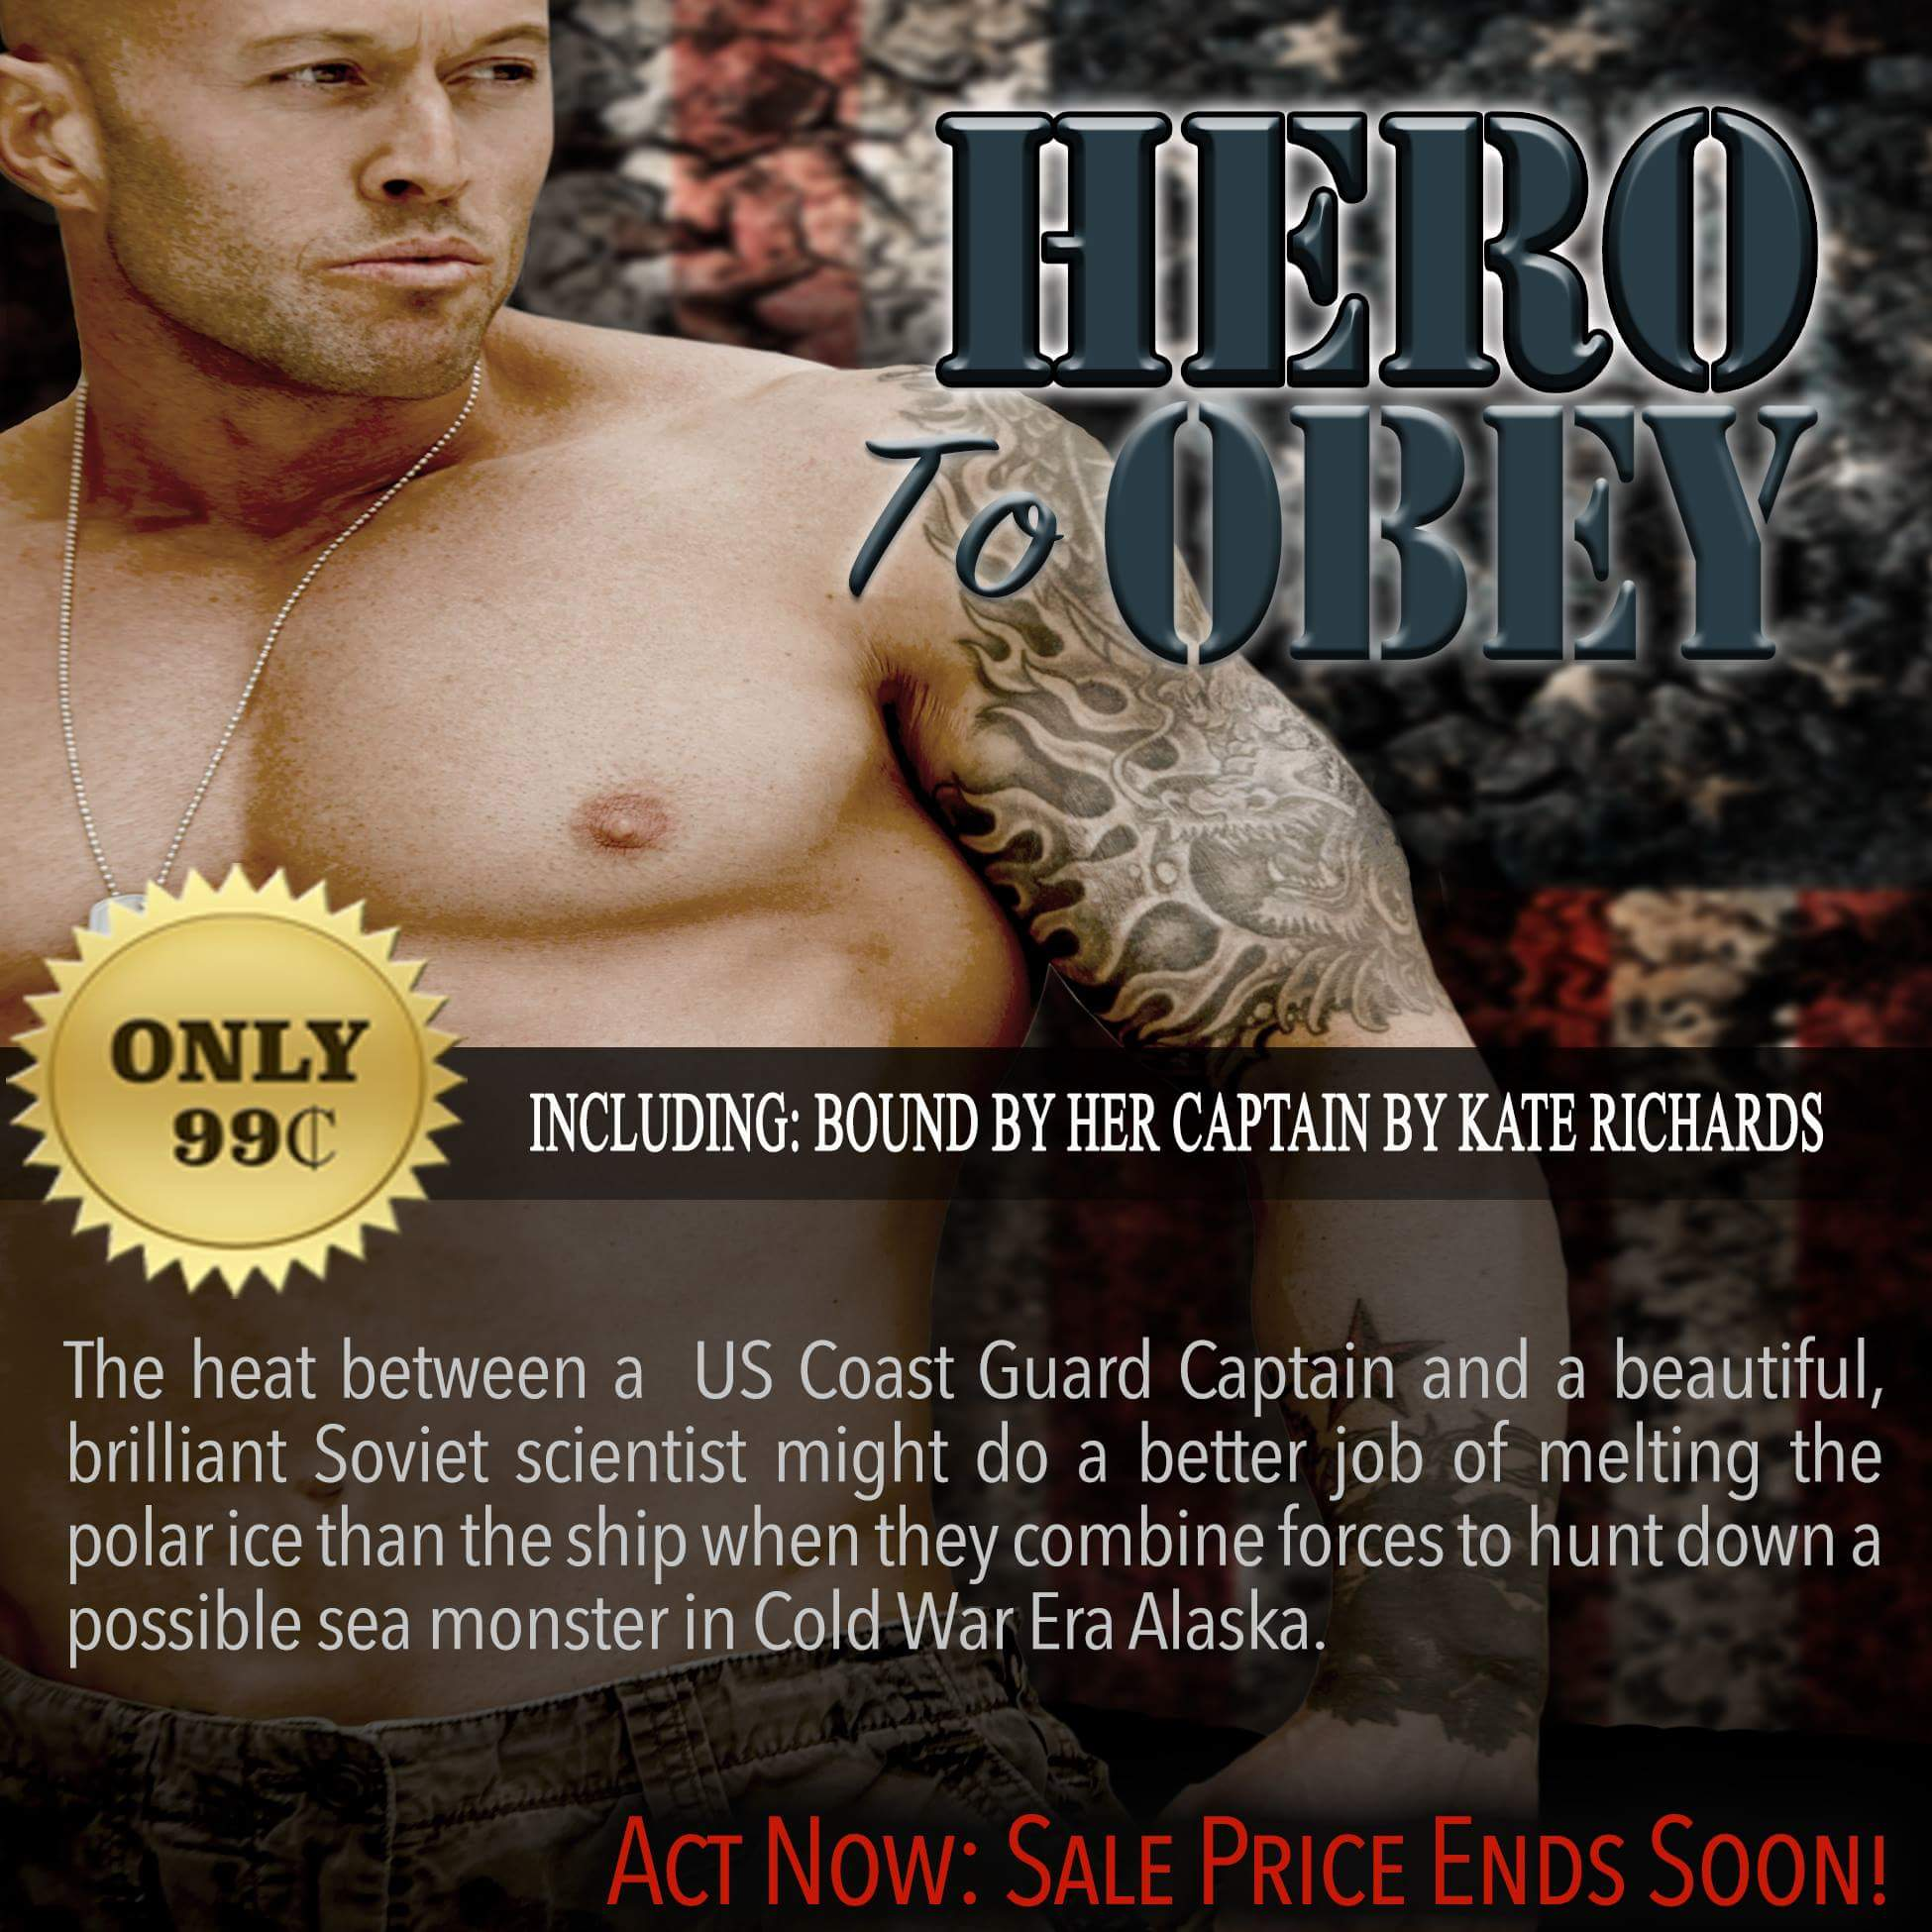 Hero To Obey Book Cover Model Actor John Joseph Quinlan by Kate Richards #JohnQuinlan #Hero2obey